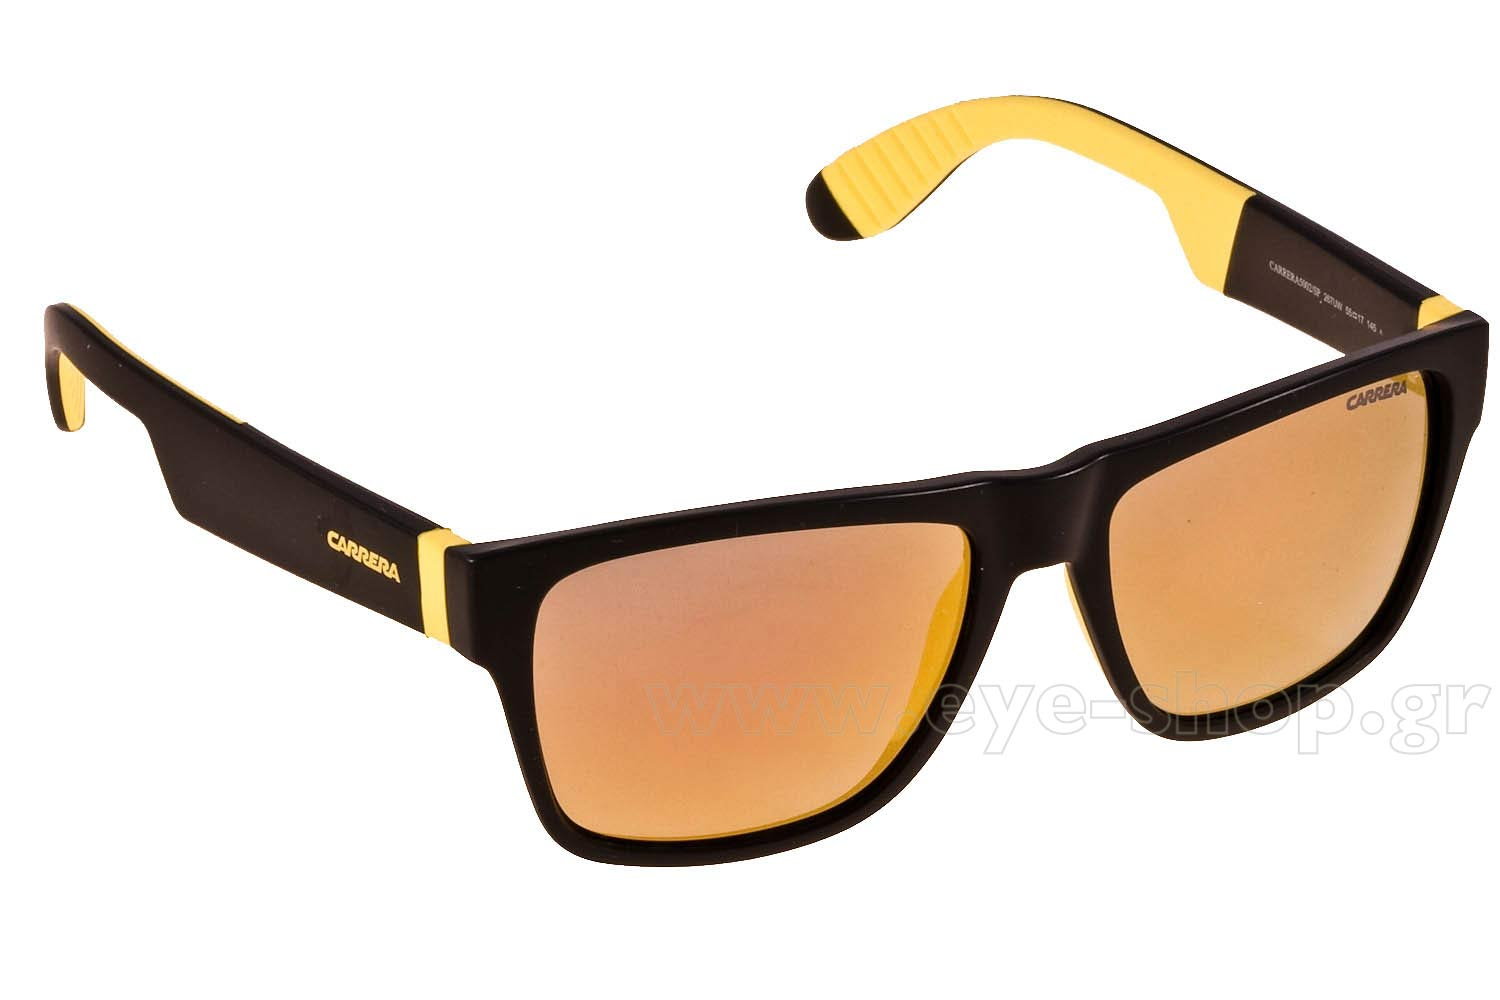 77fd0461e1891 SUNGLASSES Carrera CARRERA 5002  SP 267UW BLCK YLLW ORANGE FLASH ML